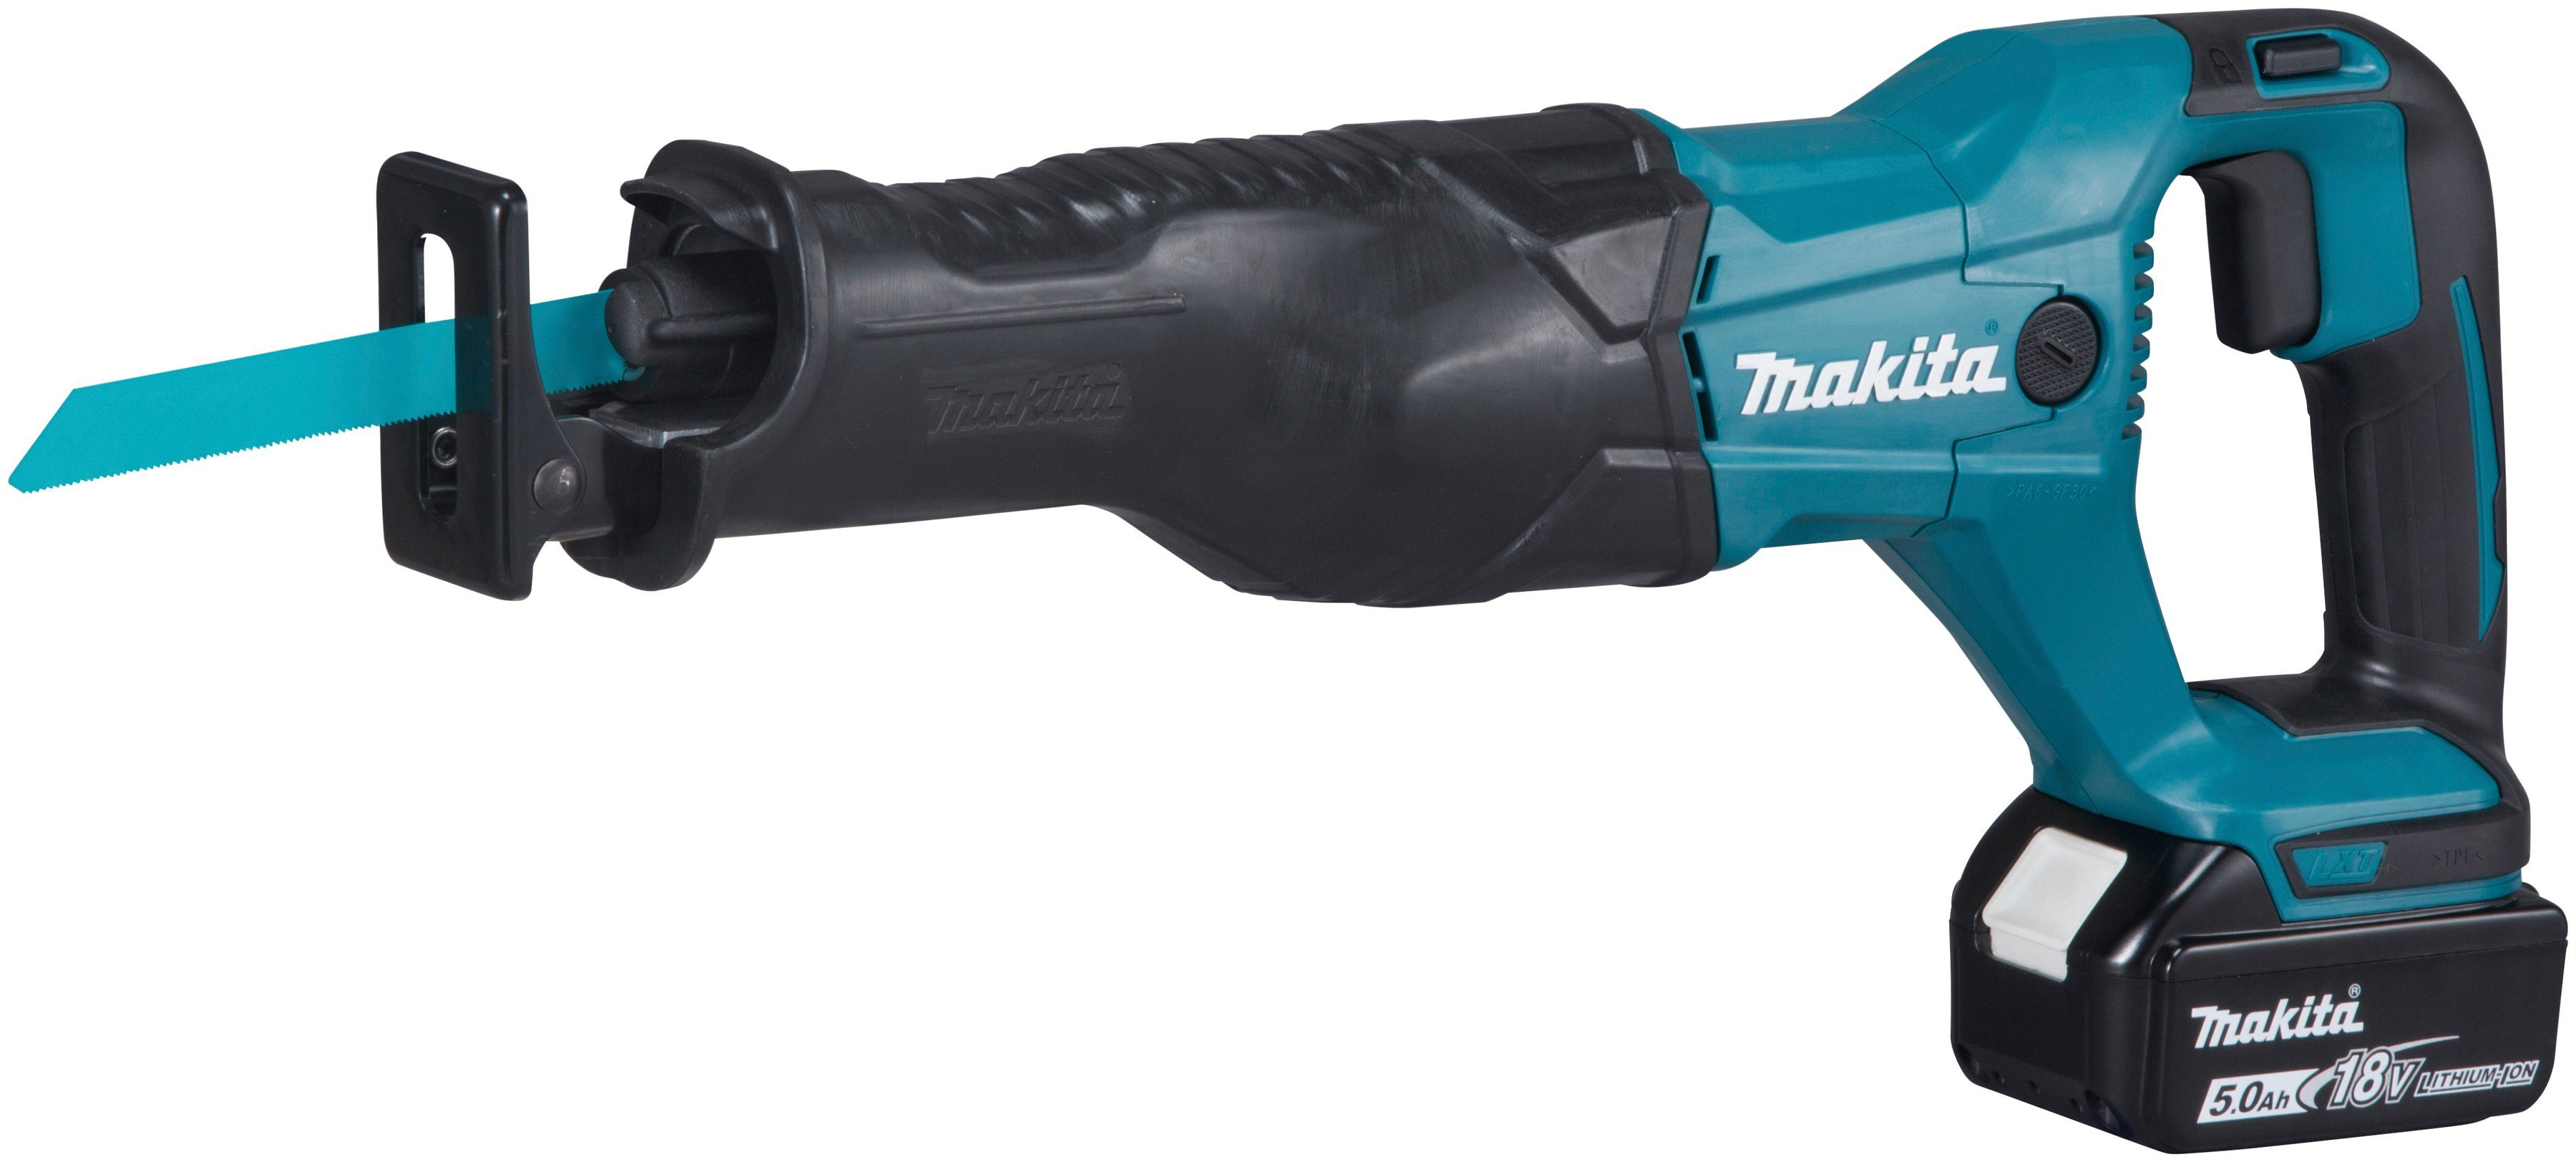 MAKITA Reciprosäge »DJR186RT«, 18,0 V / 5,0 Ah